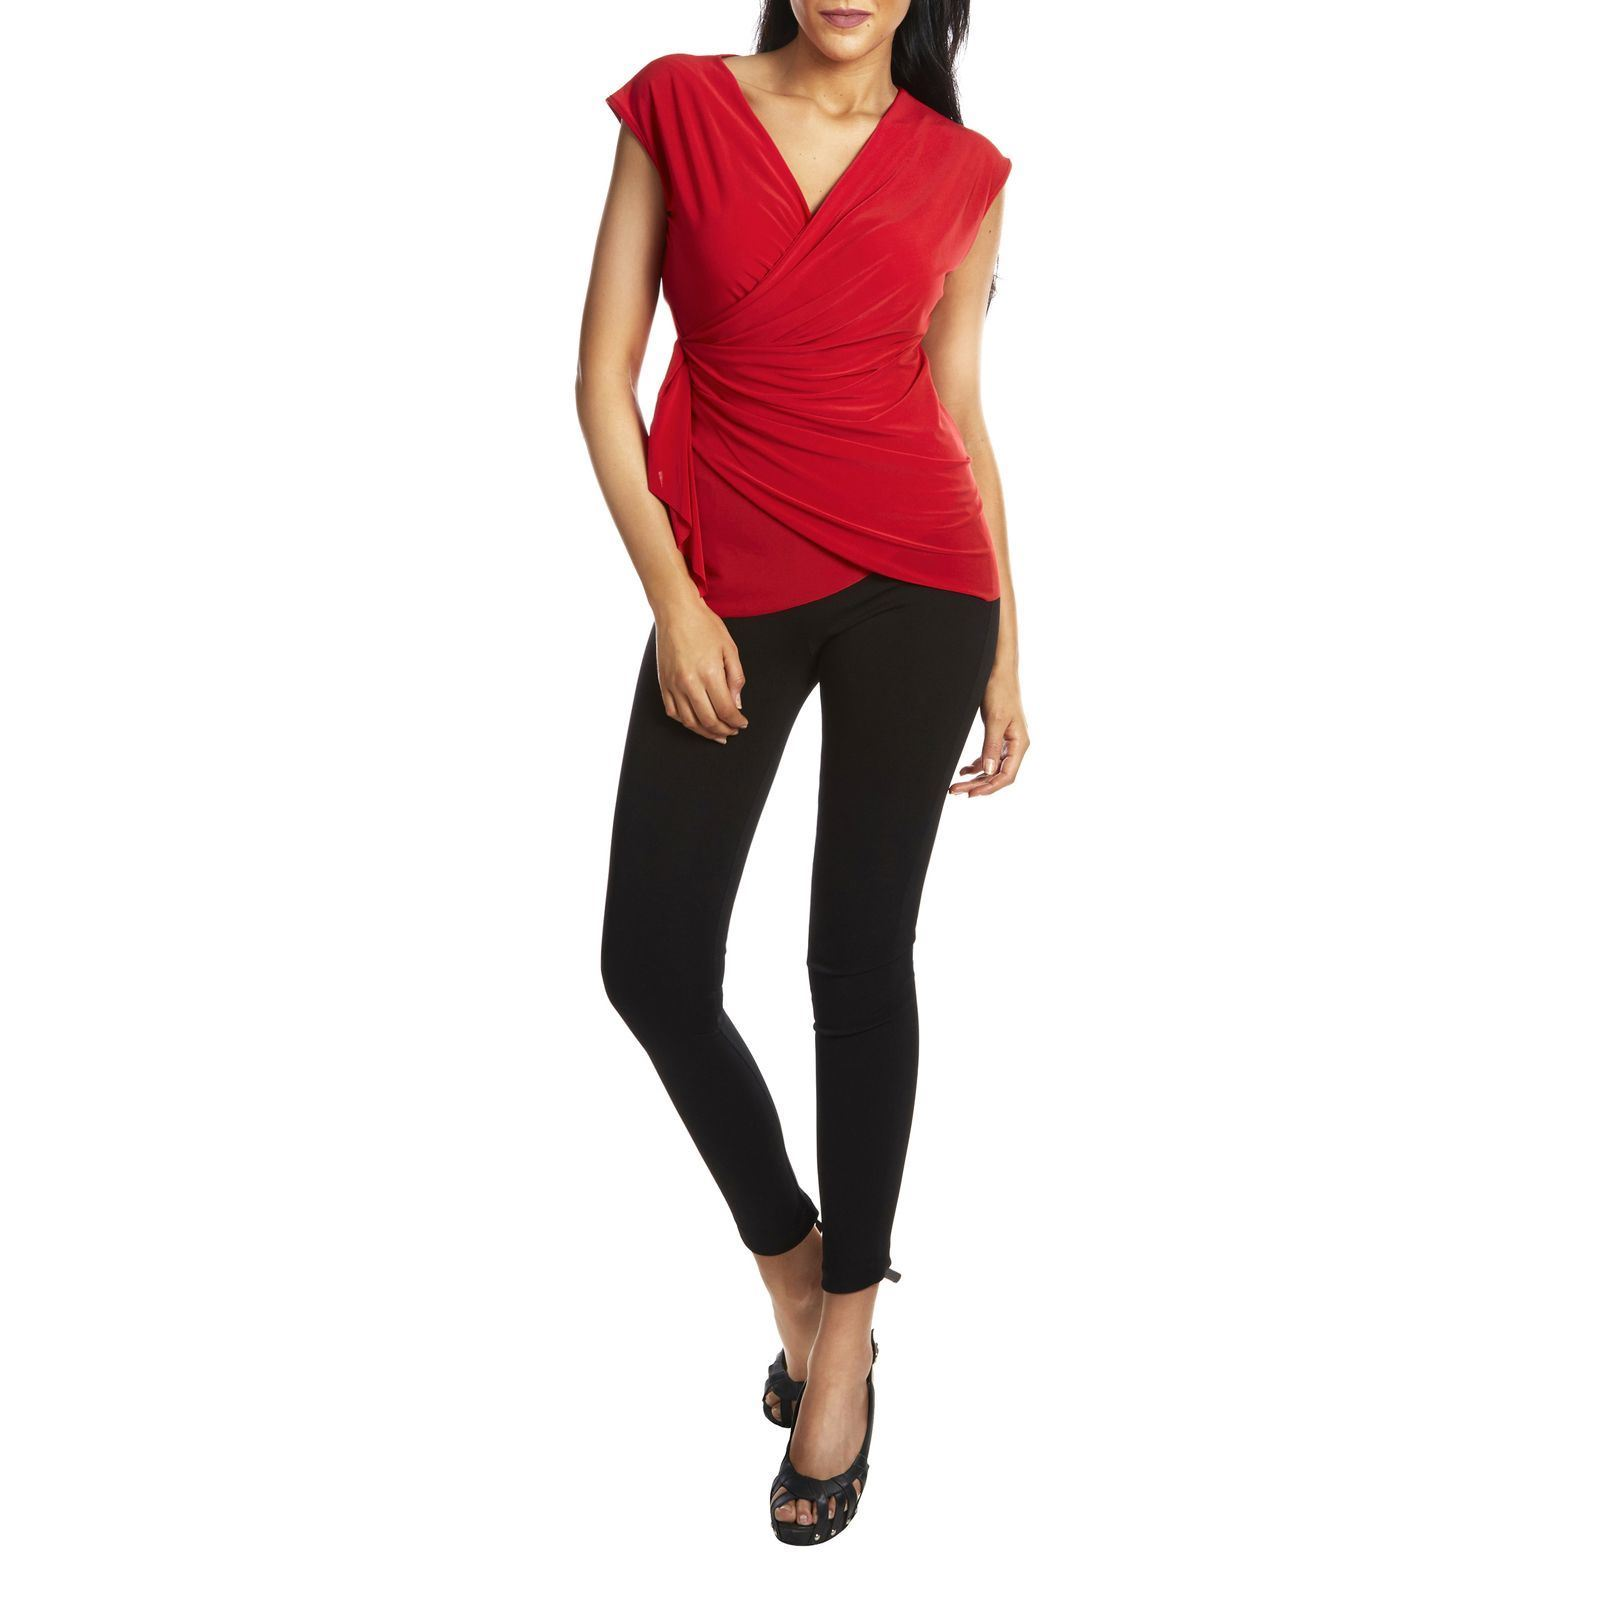 Alice et Charlotte Top - rouge   BrandAlley 288f6bbe5c55